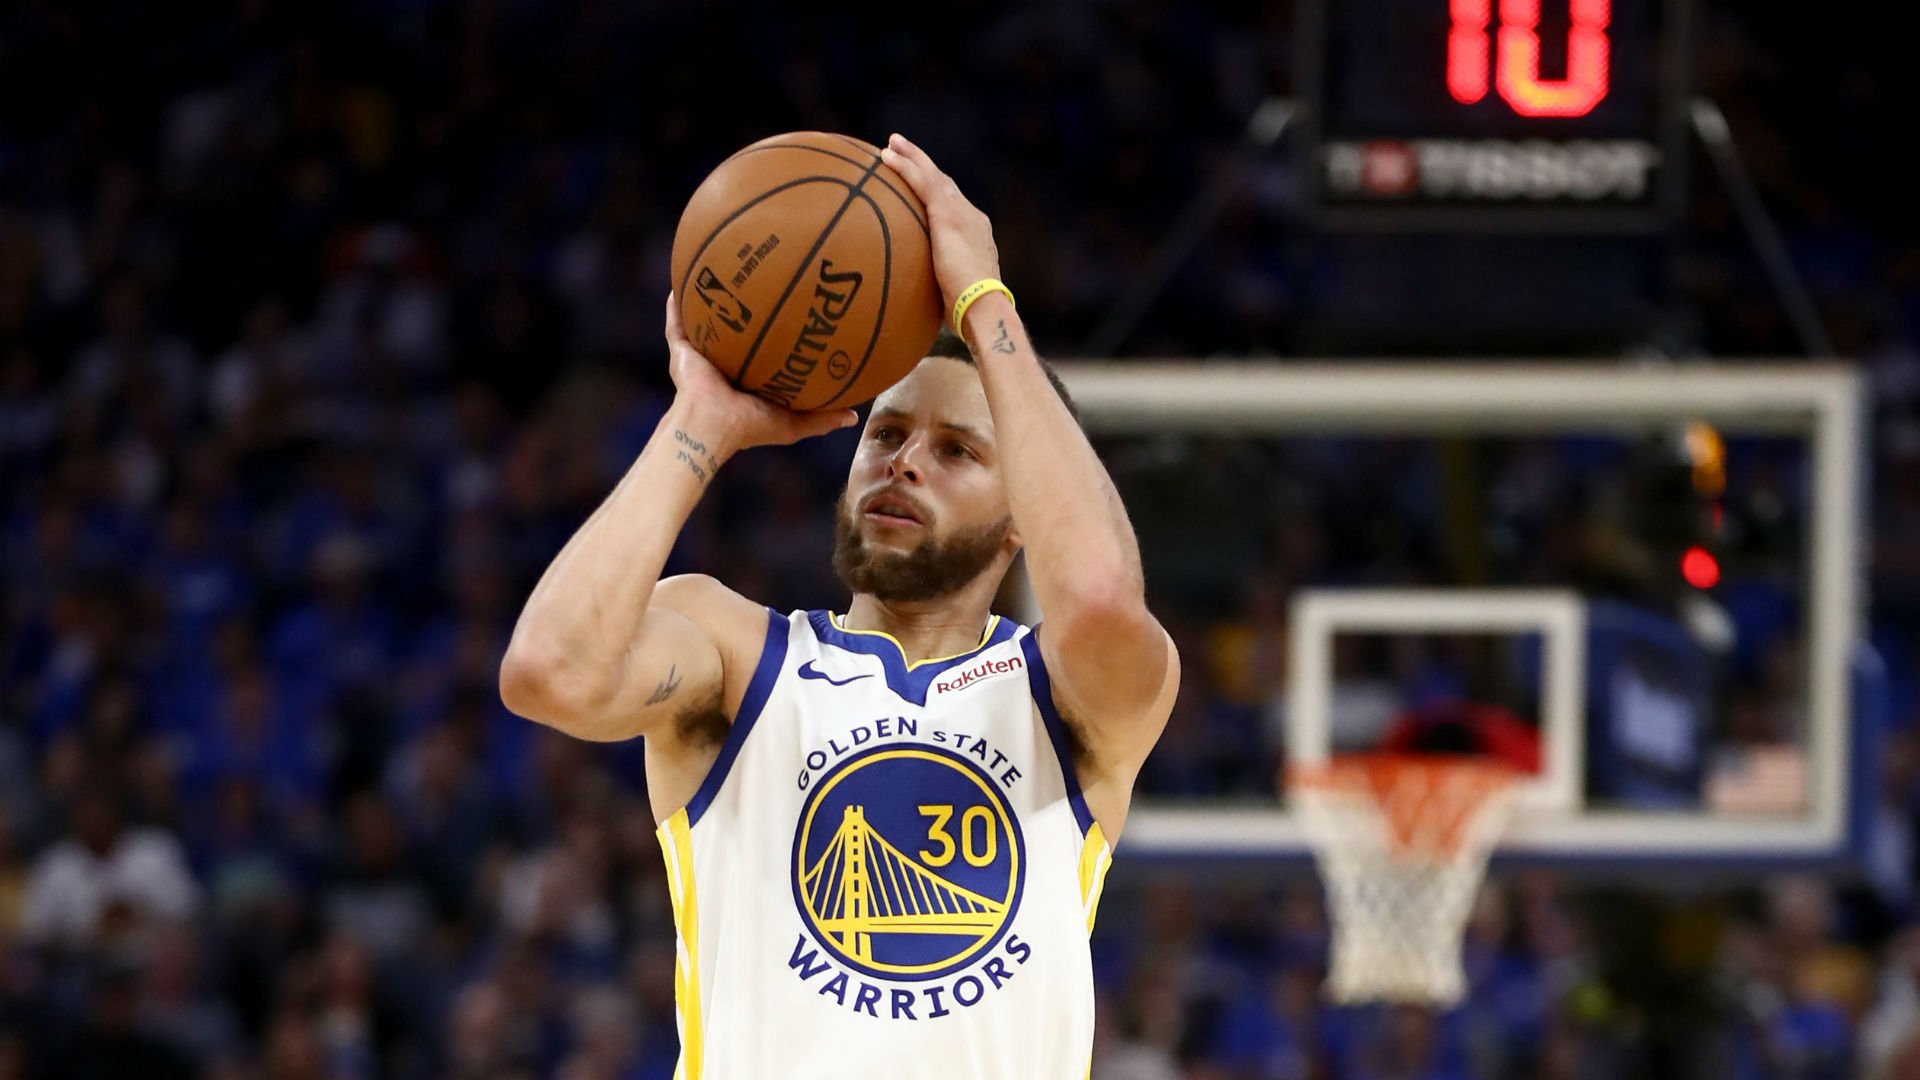 NBA All-Star Odds: 3-Point and Slam Dunk Contests, Skills Competition